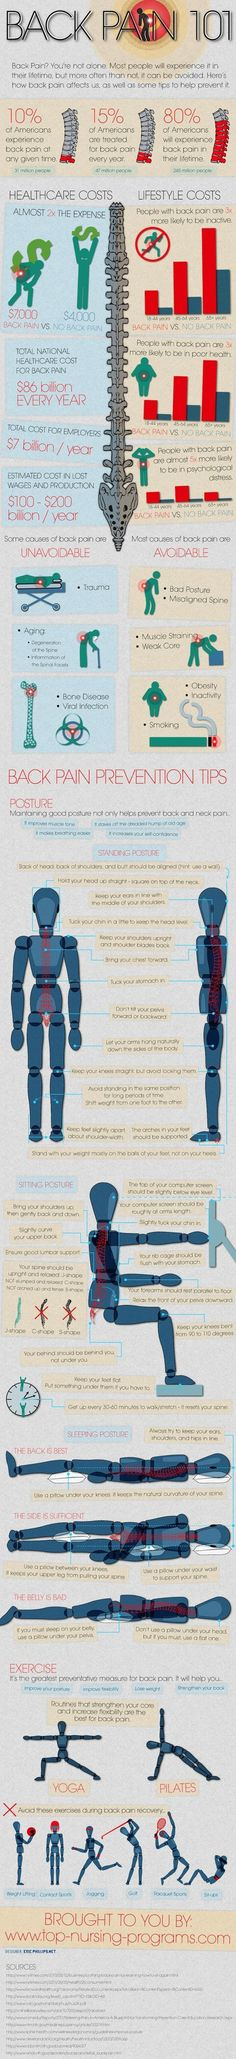 Everything You Need To Know About Back Pain (Infographic) (Lower Back Pain Massage) Health And Beauty, Health And Wellness, Health Tips, Health Fitness, Hip Problems, Chiropractic Care, Back Pain Relief, Shoulder Pain Relief, Pain Management